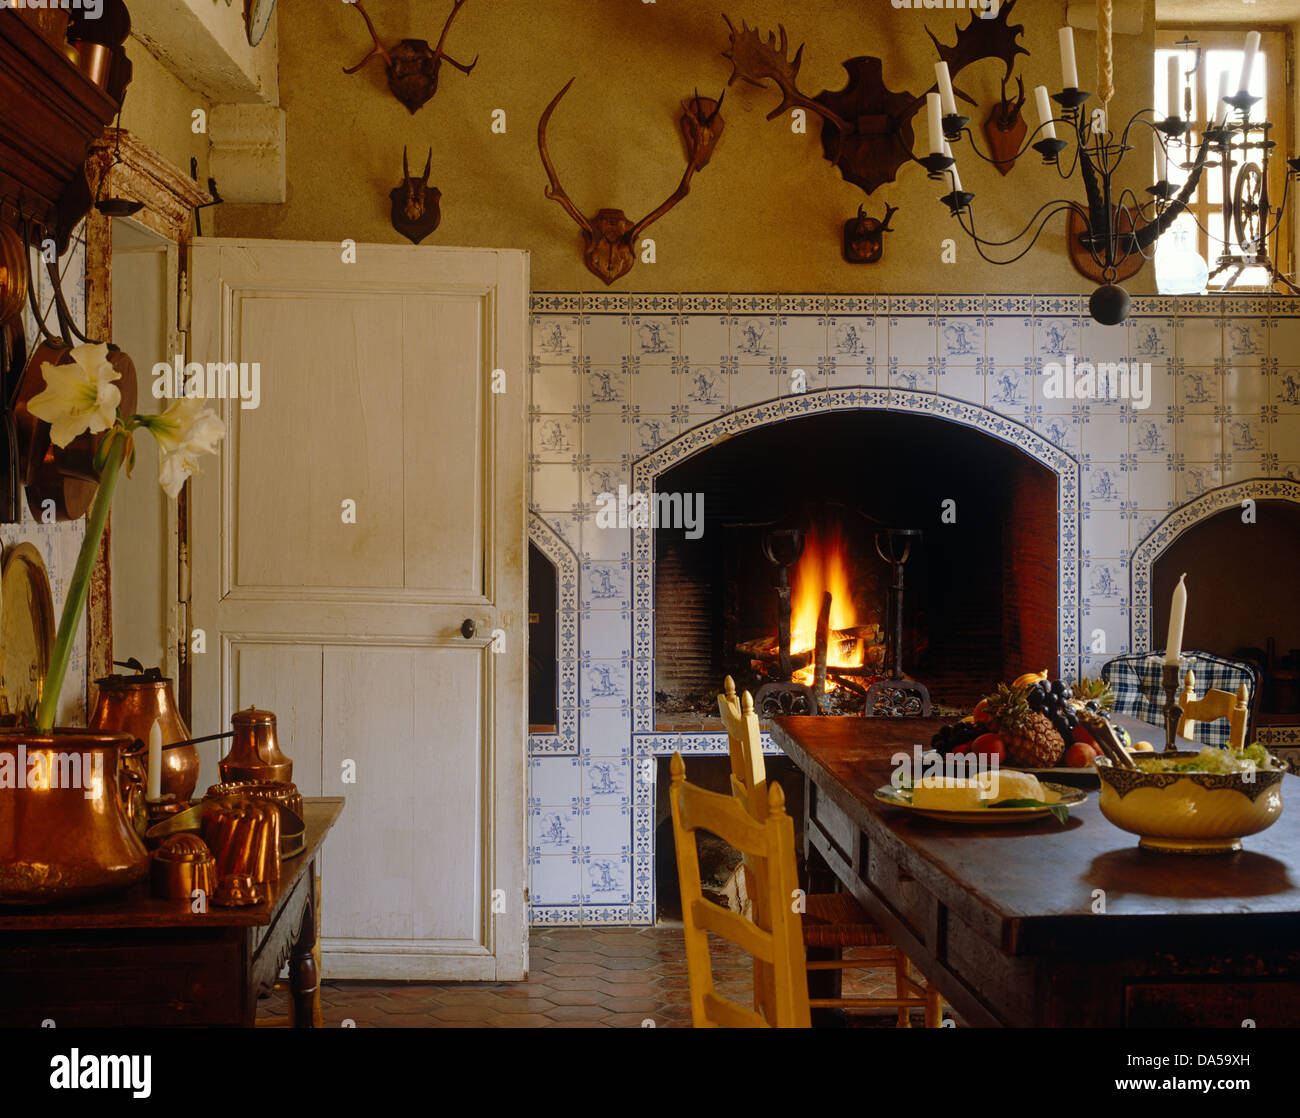 wooden table and chairs in french country kitchen with display of antlers above open fire in recess in bluewhite tiled wall - Kitchen In French